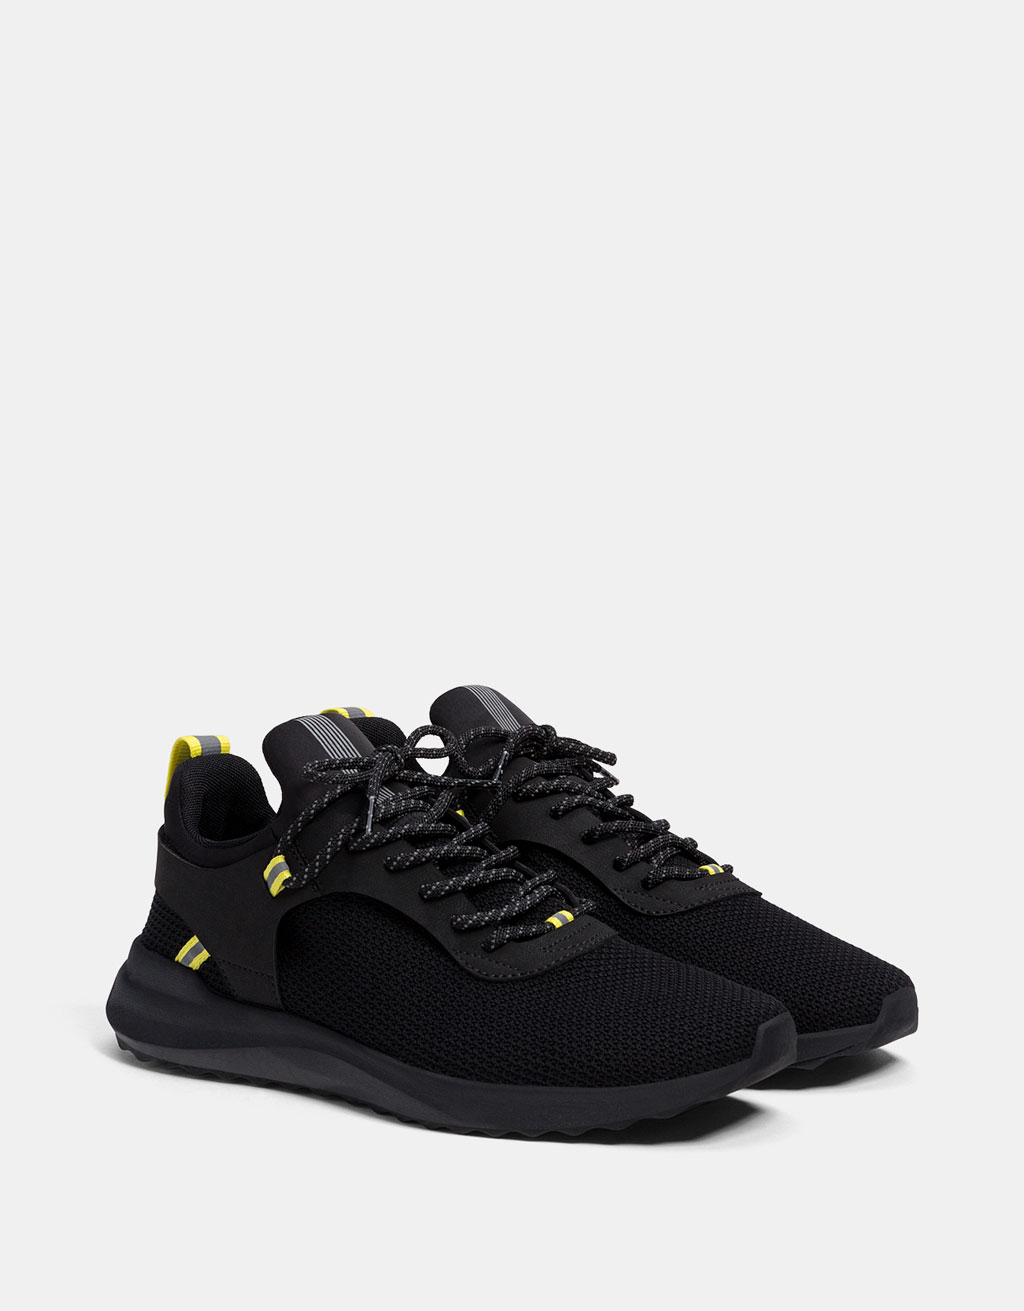 Men's technical sneakers with neon detail